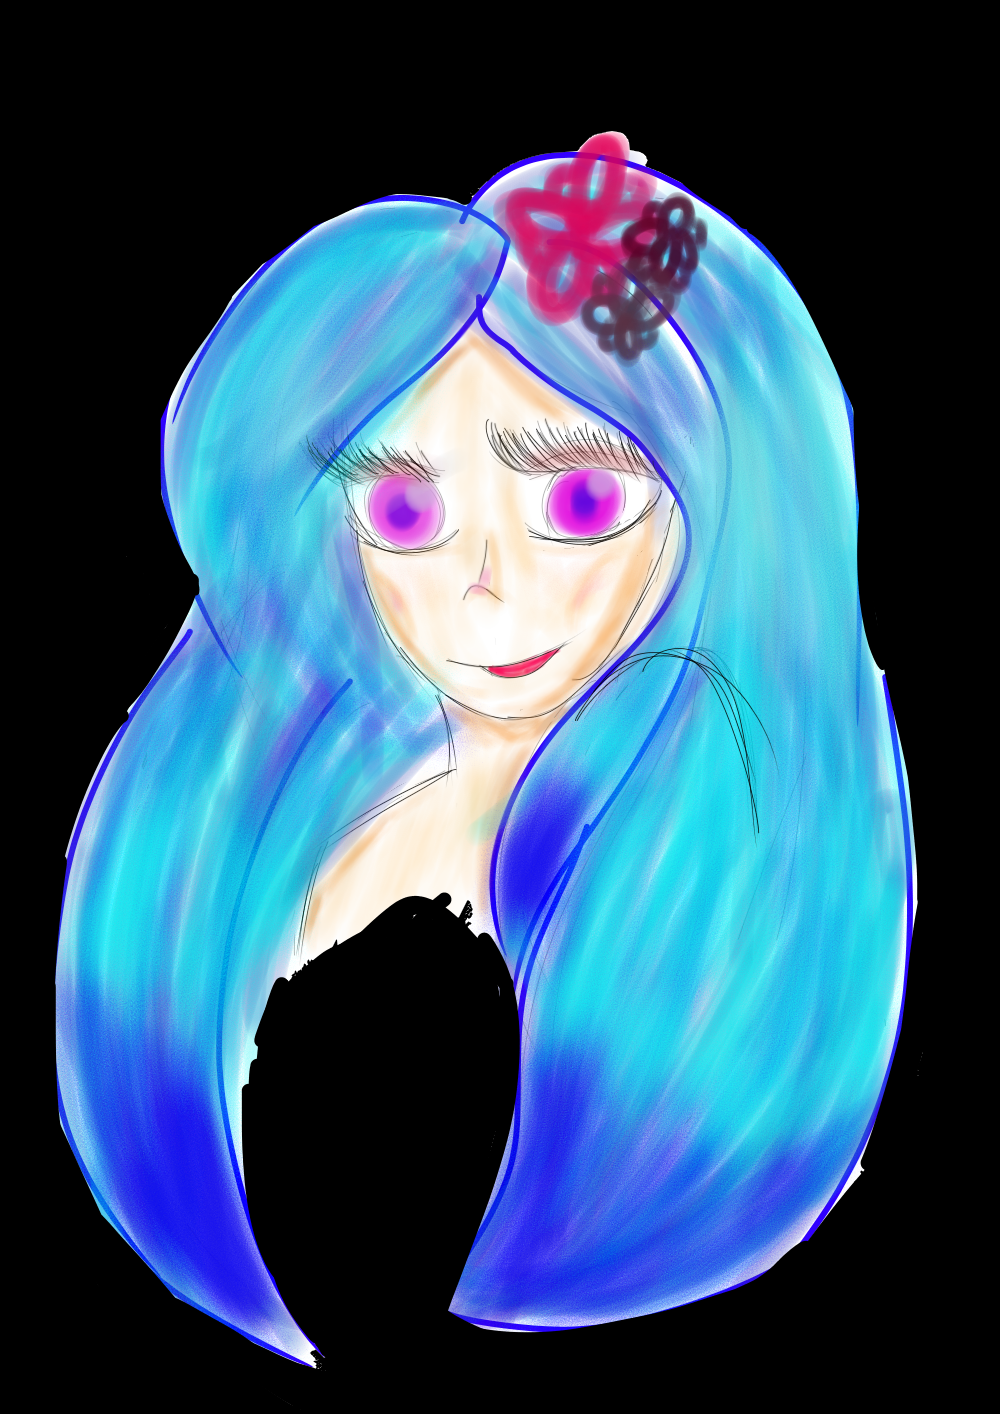 Blue-haired Girl by Soshadilver